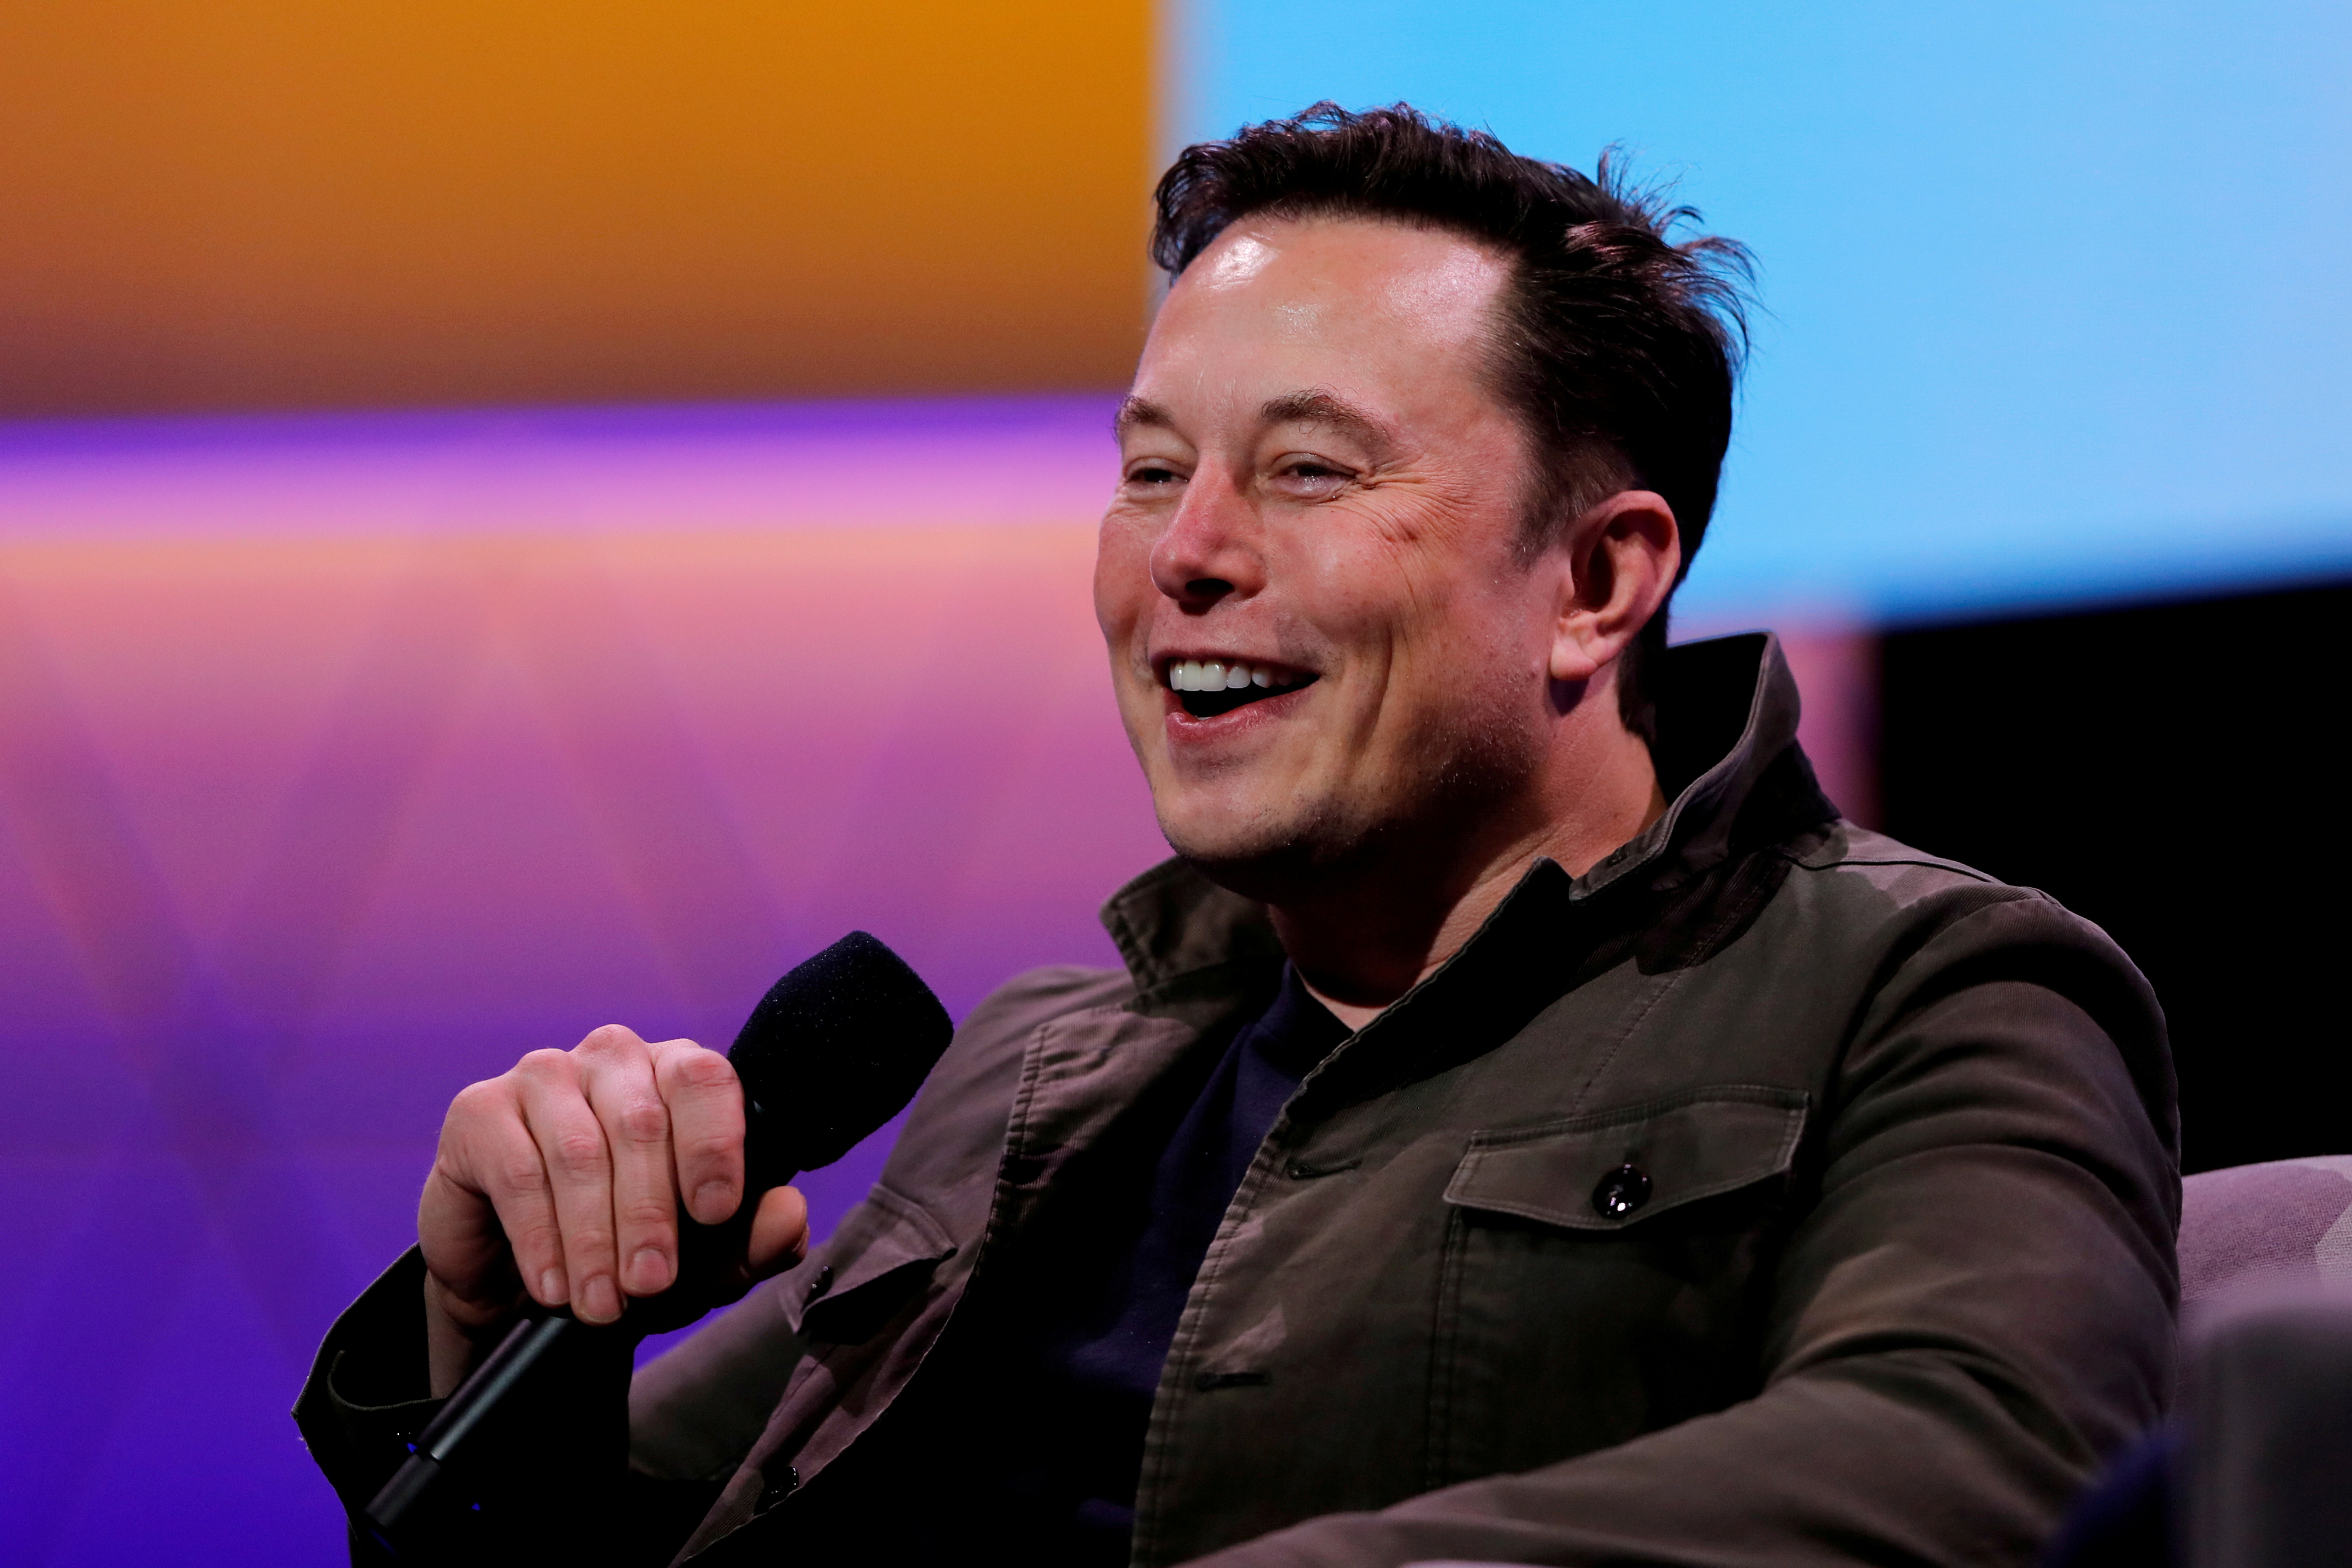 Tesla CEO Elon Musk speaks during the E3 gaming convention in Los Angeles, California, U.S., June 13, 2019.  REUTERS/Mike Blake